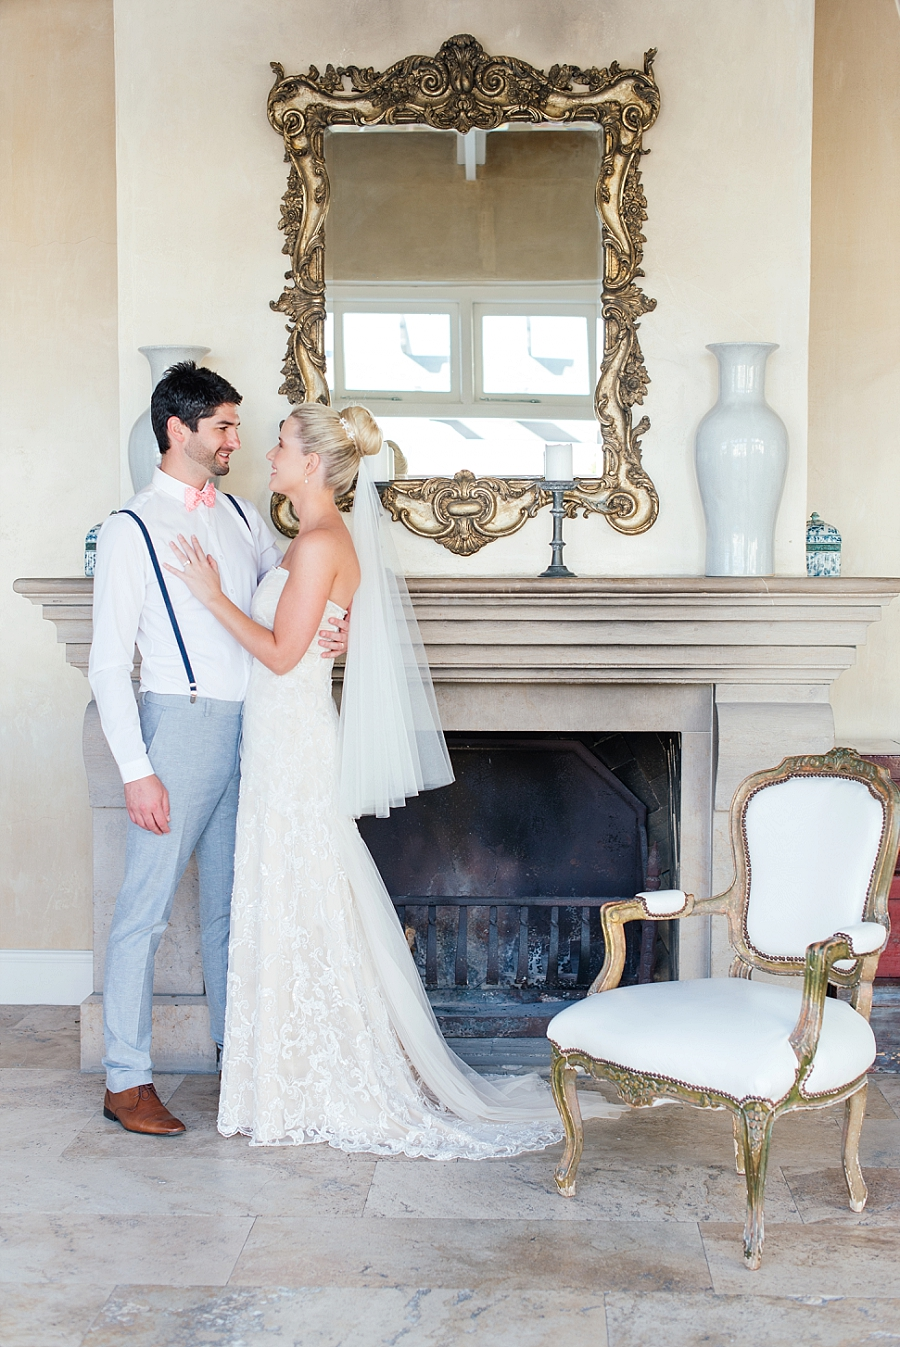 Darren Bester Photography - Cape Town Wedding Photographer - The Lee Wedding_0046.jpg